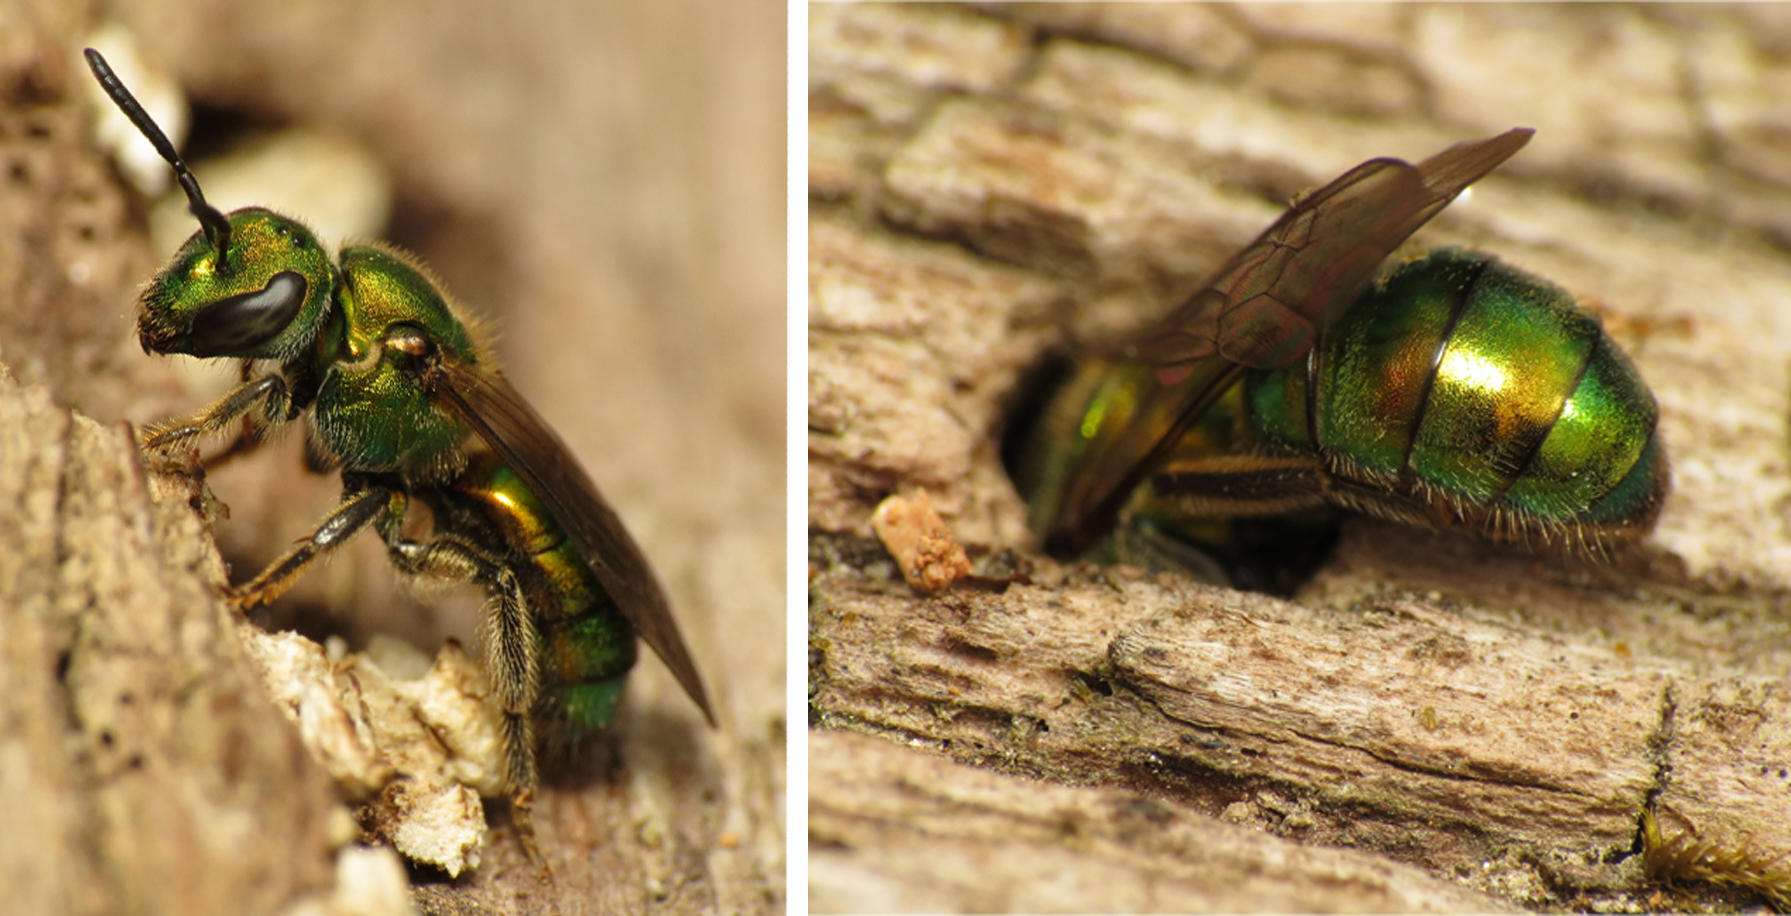 In this two-part graphic, a metallic green bee first is posed near a hole in reddish-tan wood, and then starts to climb headfirst into it.